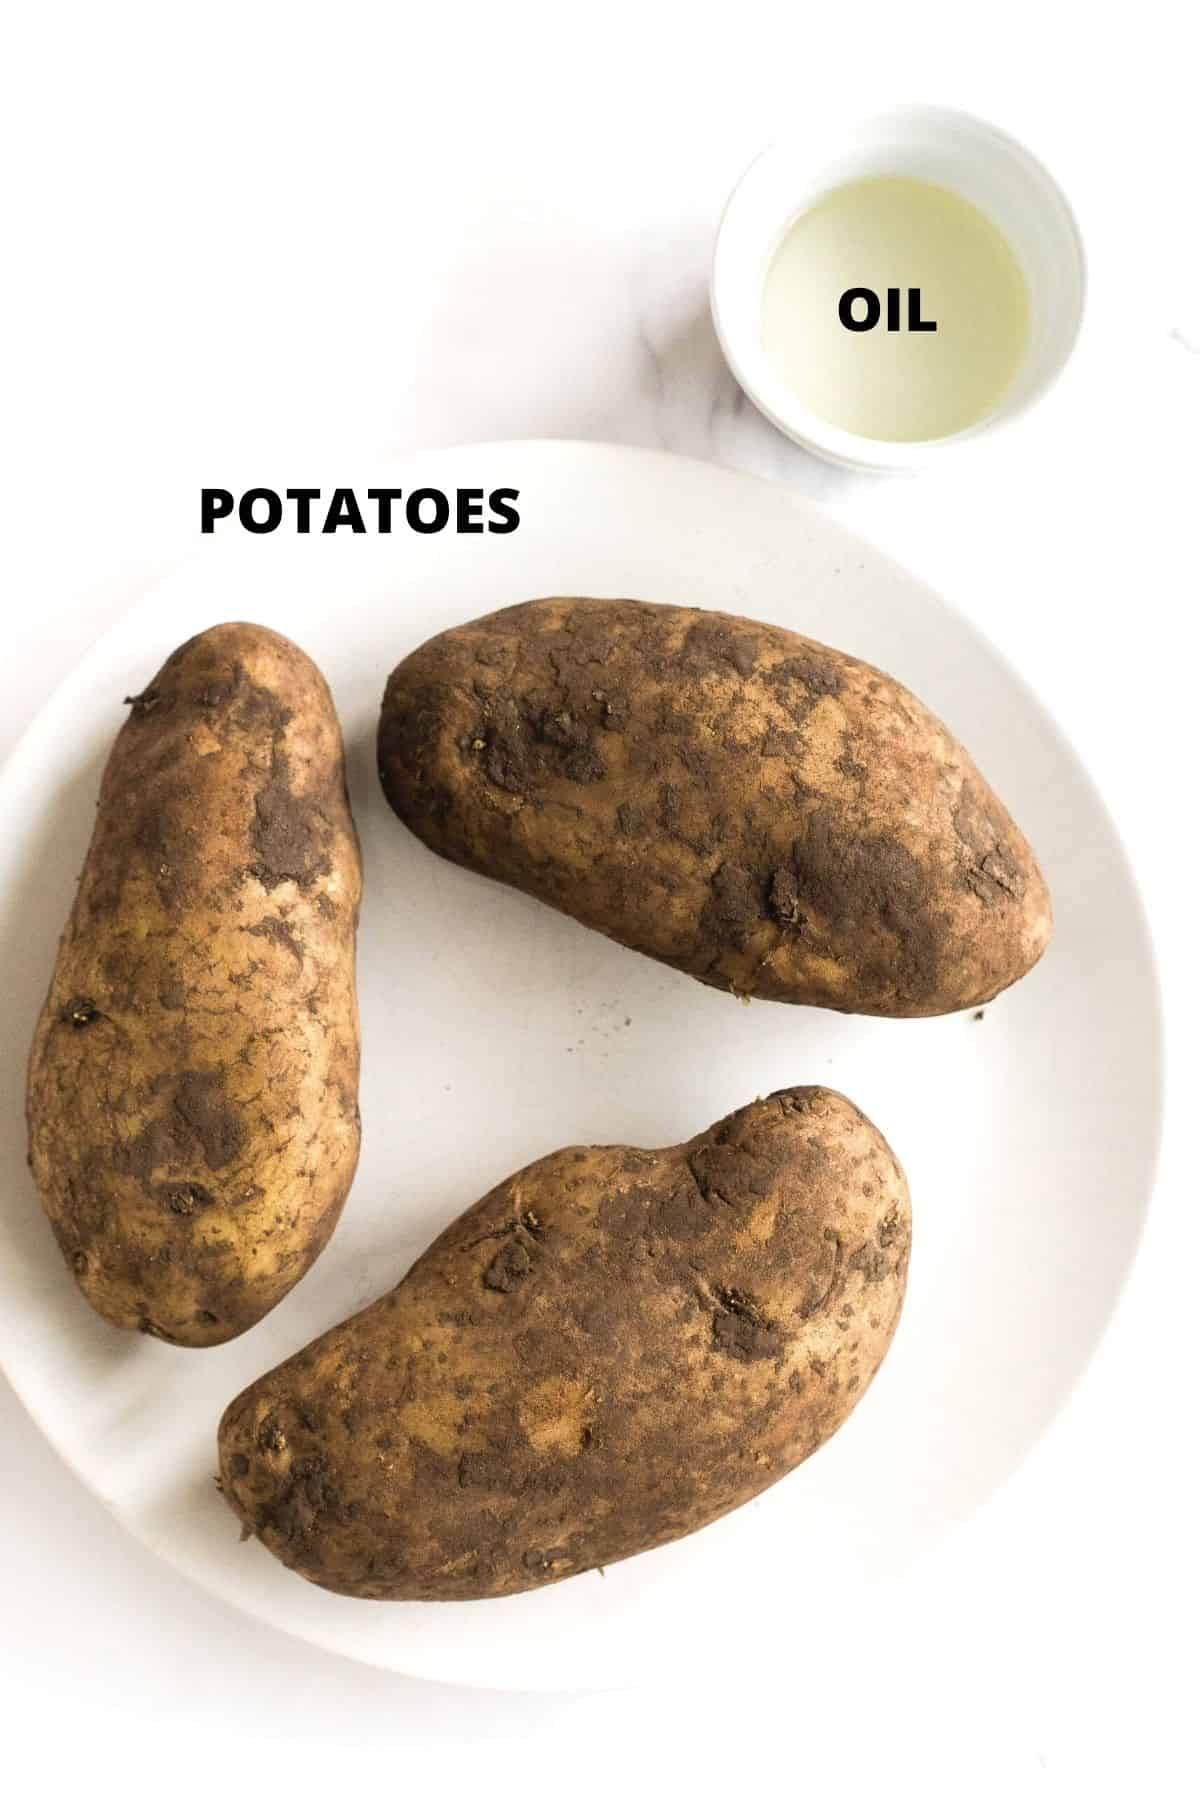 Russet potatoes on a plate and a small bowl of oil next to it.